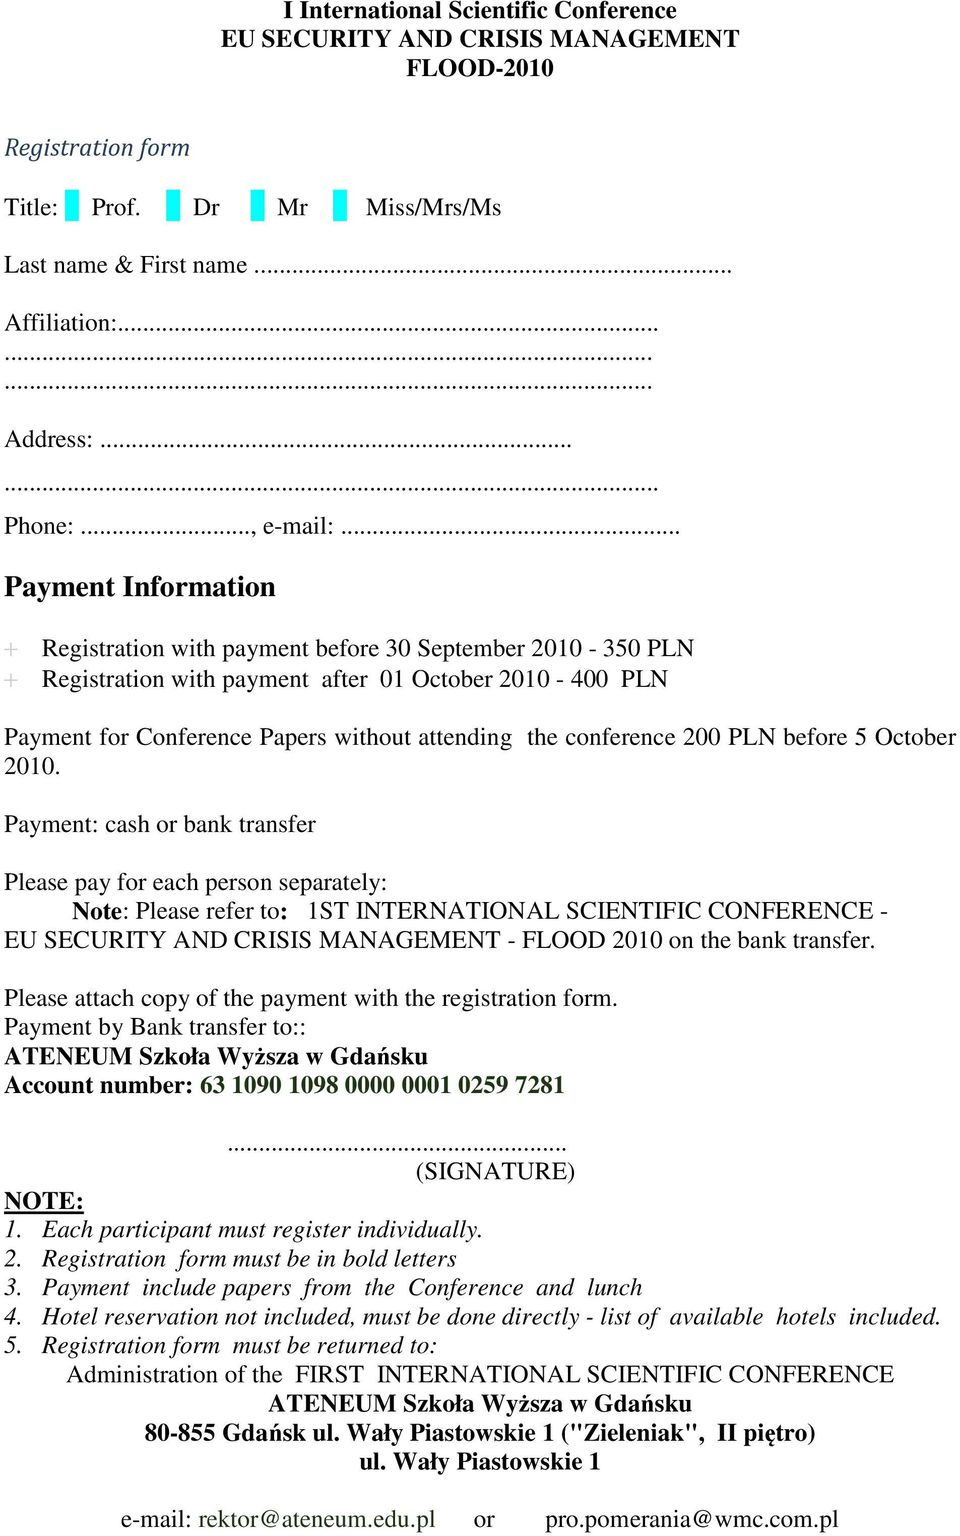 .. Payment Information + Registration with payment before 30 September 2010-350 PLN + Registration with payment after 01 October 2010-400 PLN Payment for Conference Papers without attending the